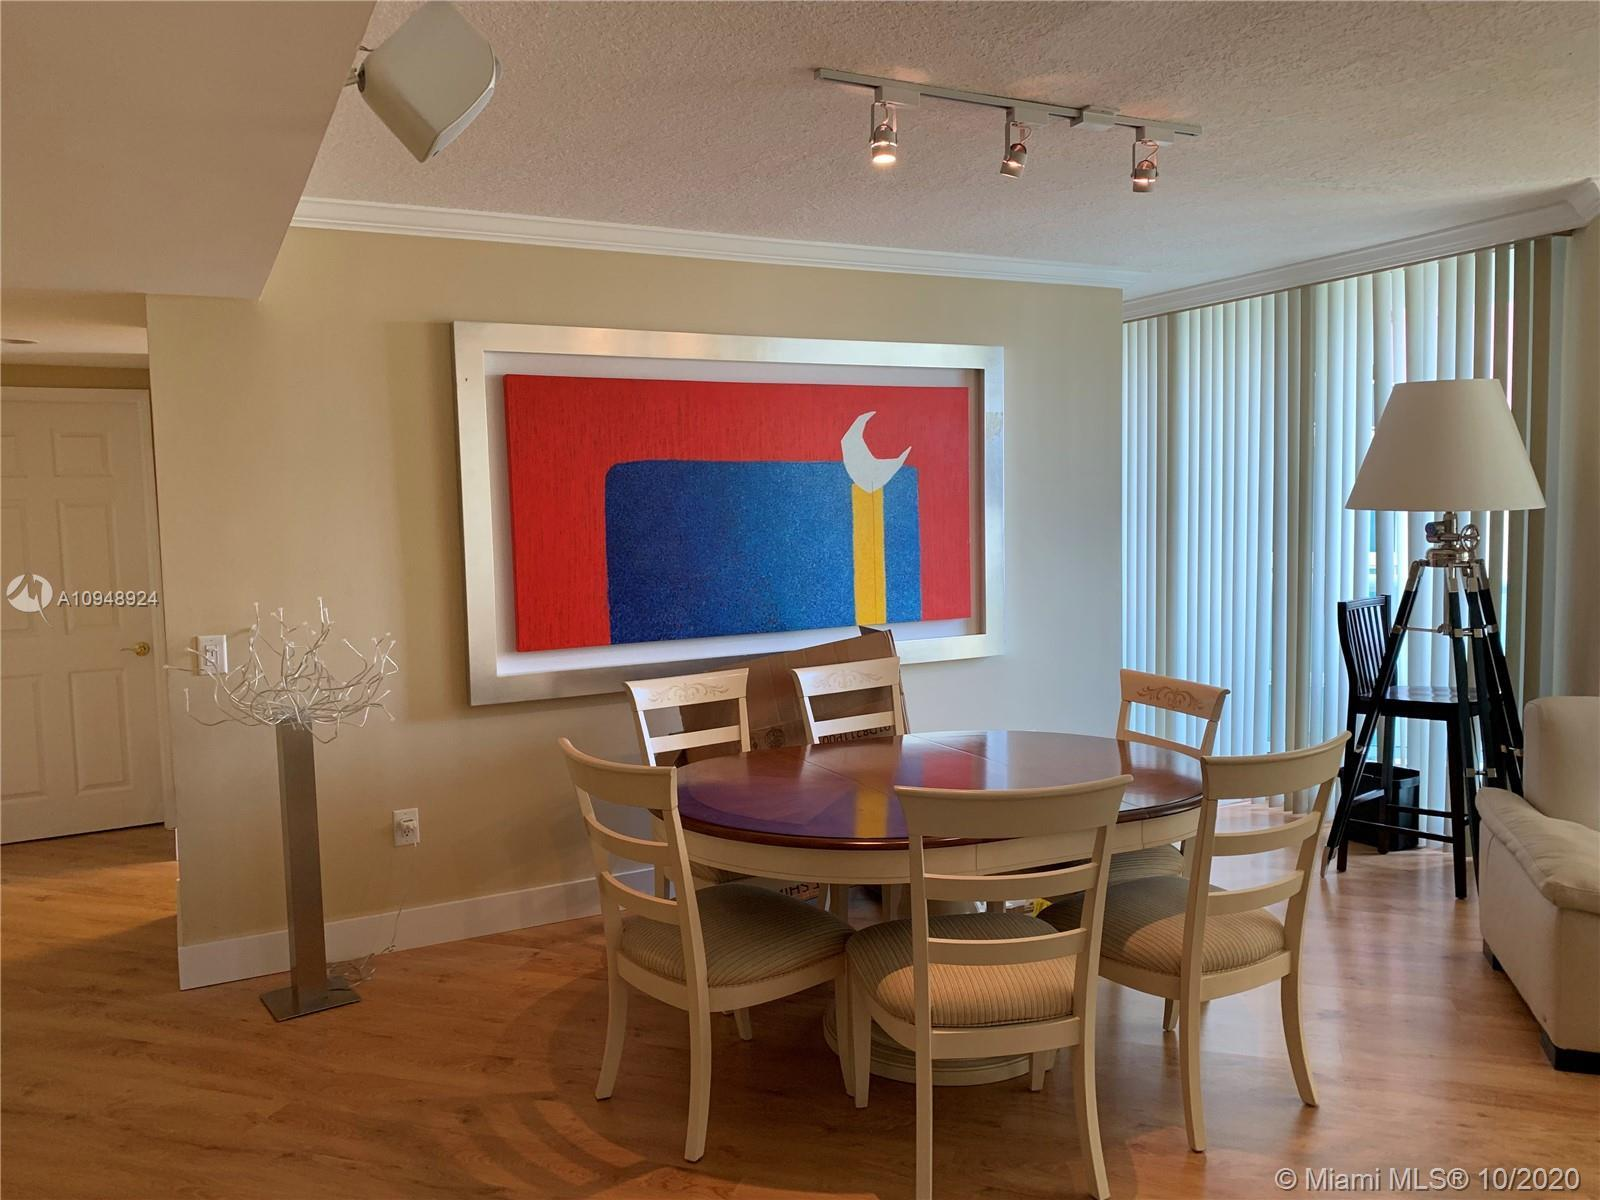 Wonderful 2 bedrooms, 2.5 bath apartment with a view of tennis courts and bay area.  New floors, kit